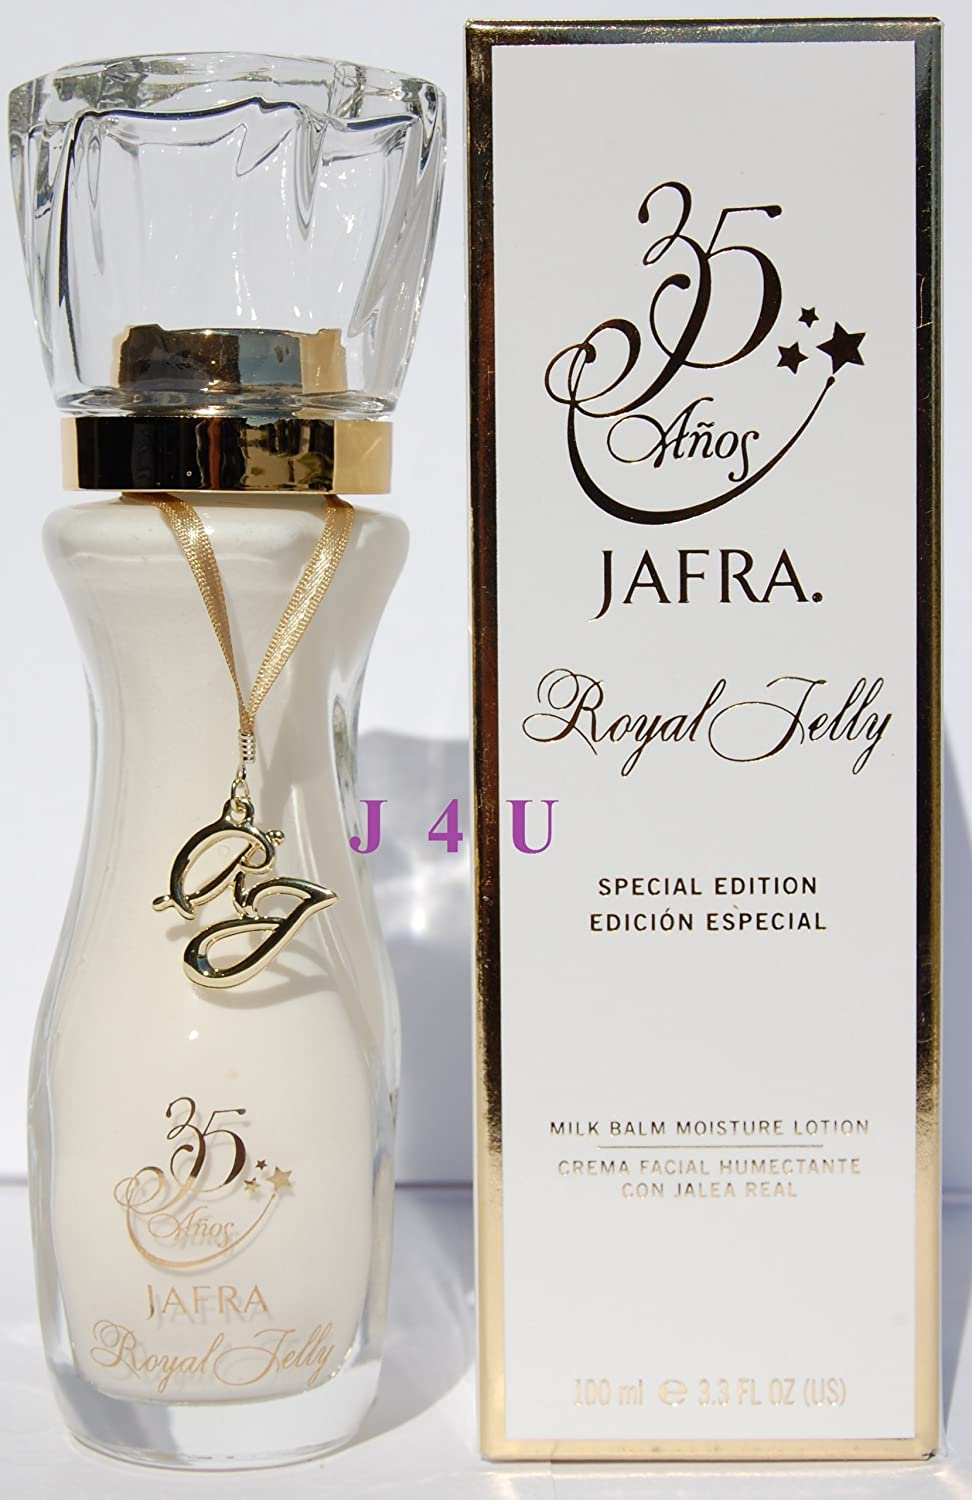 Jafra Royal Jelly Milk Balm Moisture Lotion 33 Fl Oz Member Original Formula Special Glass Bottle 35 Years Anniversary Edition